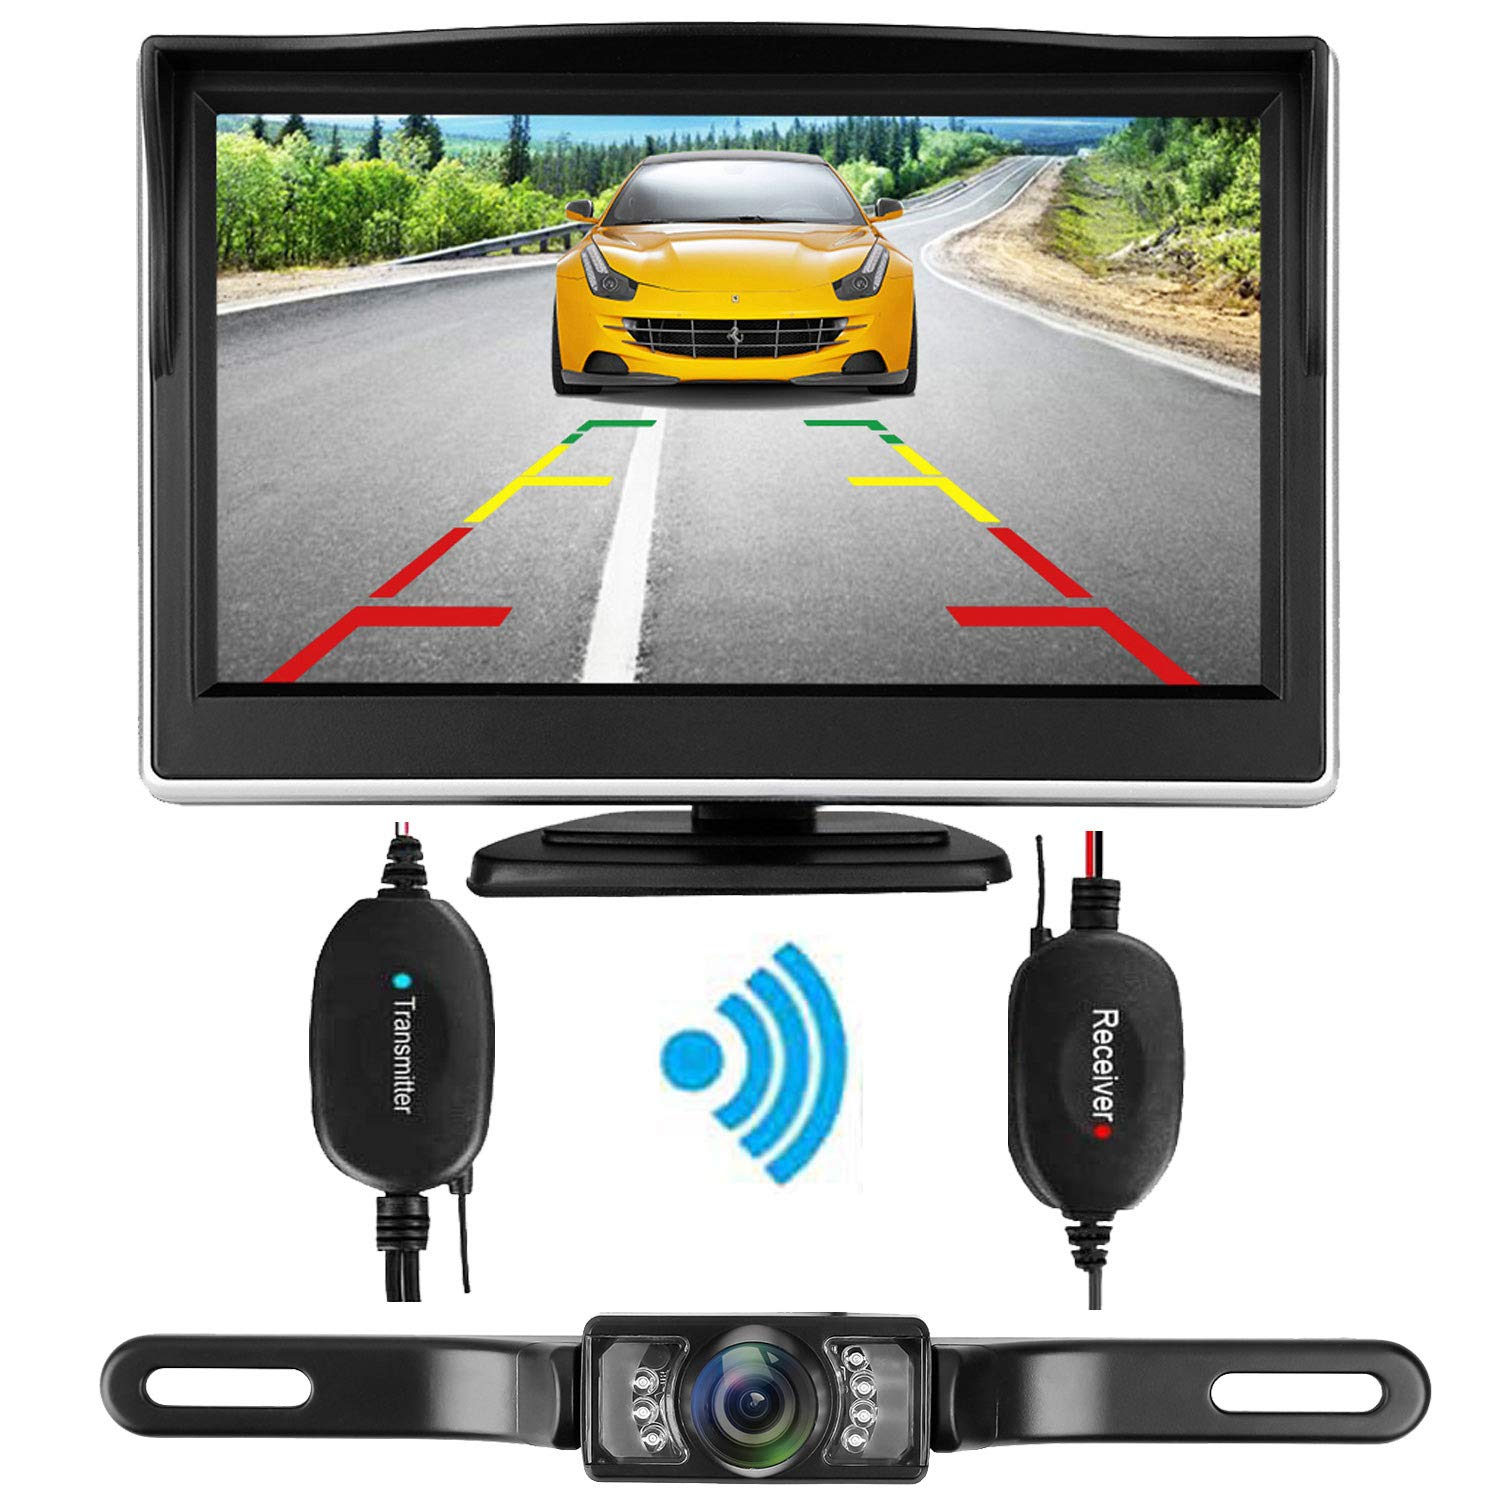 iStrong Backup Camera Wireless 4.3'' Monitor Kit for Car/SUV/Van Waterproof License Plate Rear View /Front View Camera 7 LED IR Night Vision Guide Lines ON/OFF